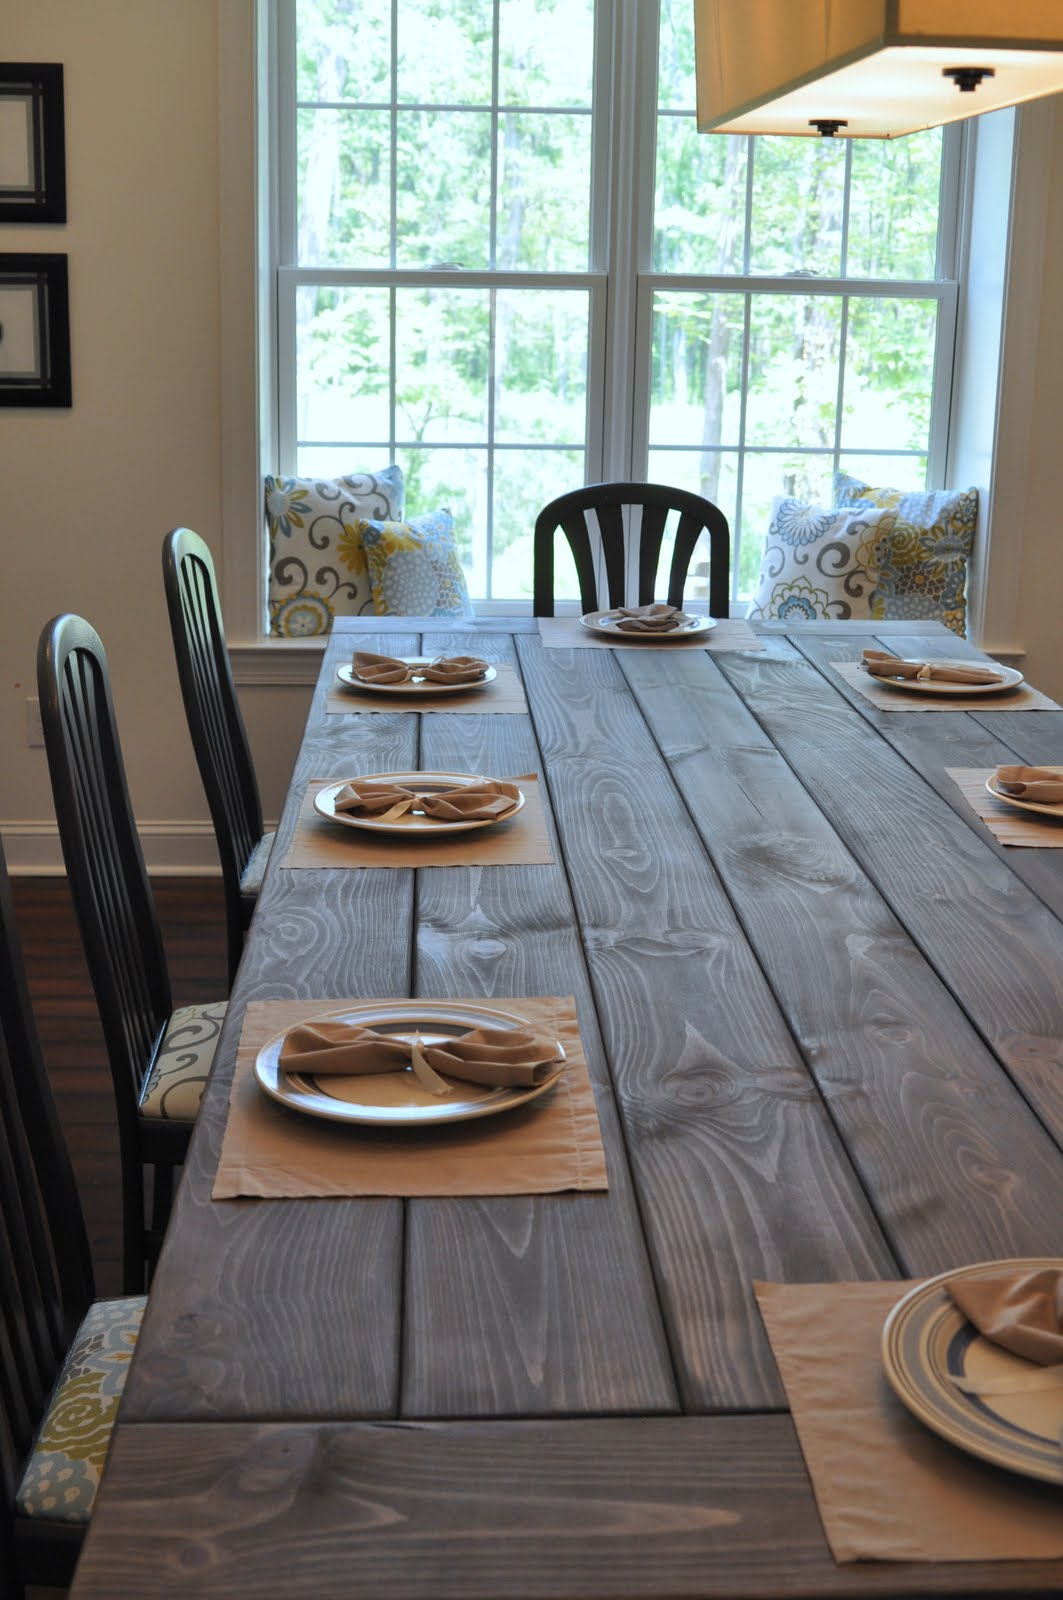 Farmhouse Table Remix How to Build a Farmhouse Table East Coast Creative